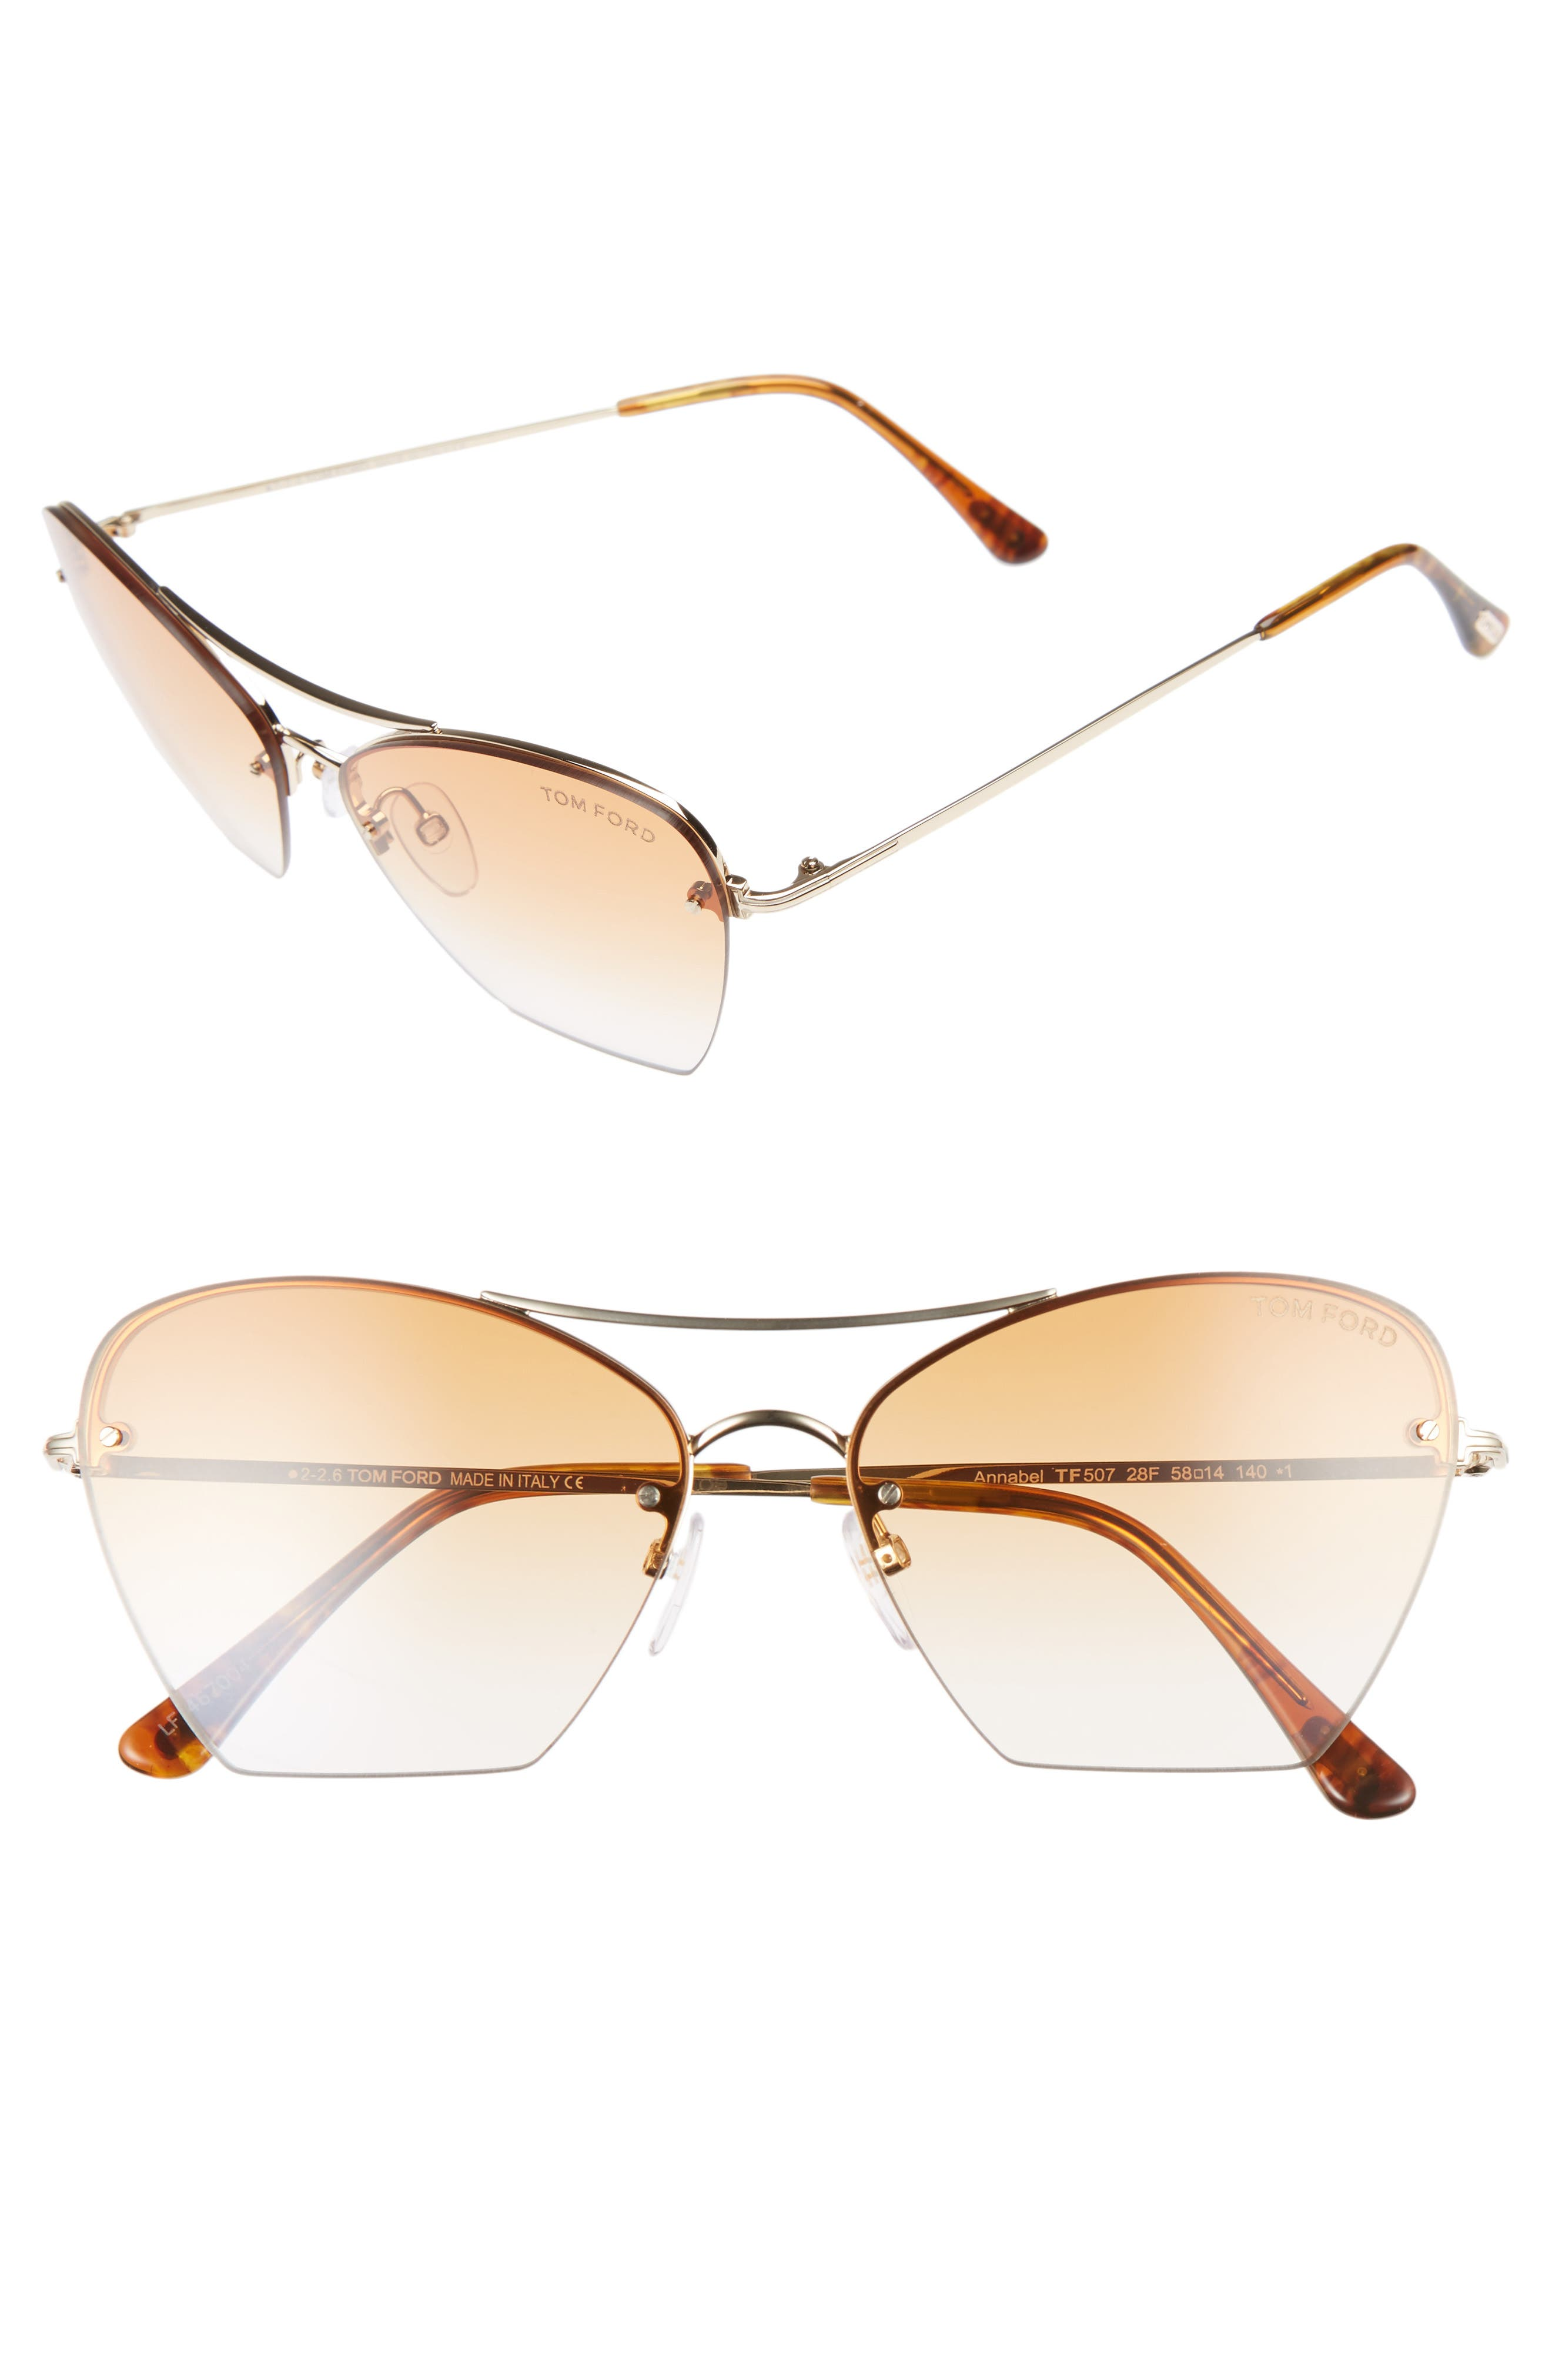 Main Image - Tom Ford Annabel 58mm Cat Eye Sunglasses